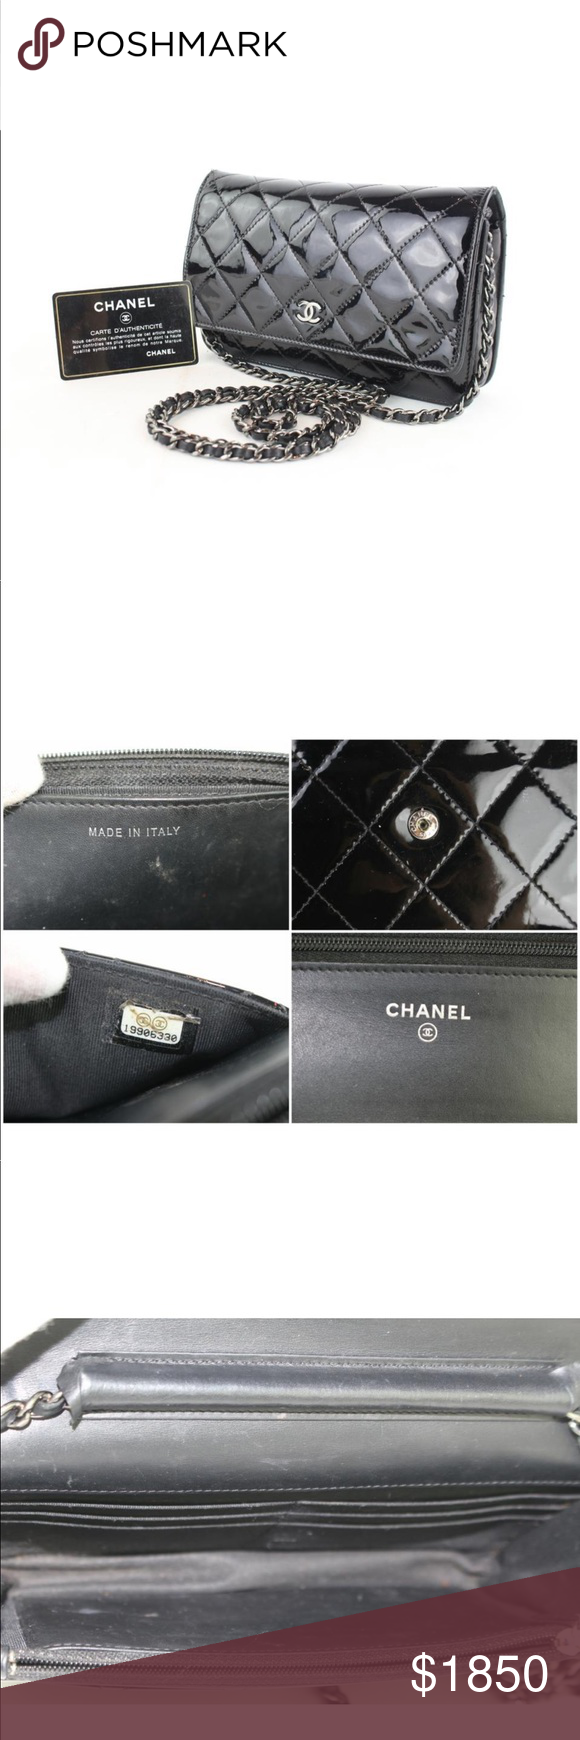 e84d49beffce Patent Leather black Chanel quilted WOC Less on 🅿 Date Code/Serial Number:  19906330 Measurements: Length: 7.5